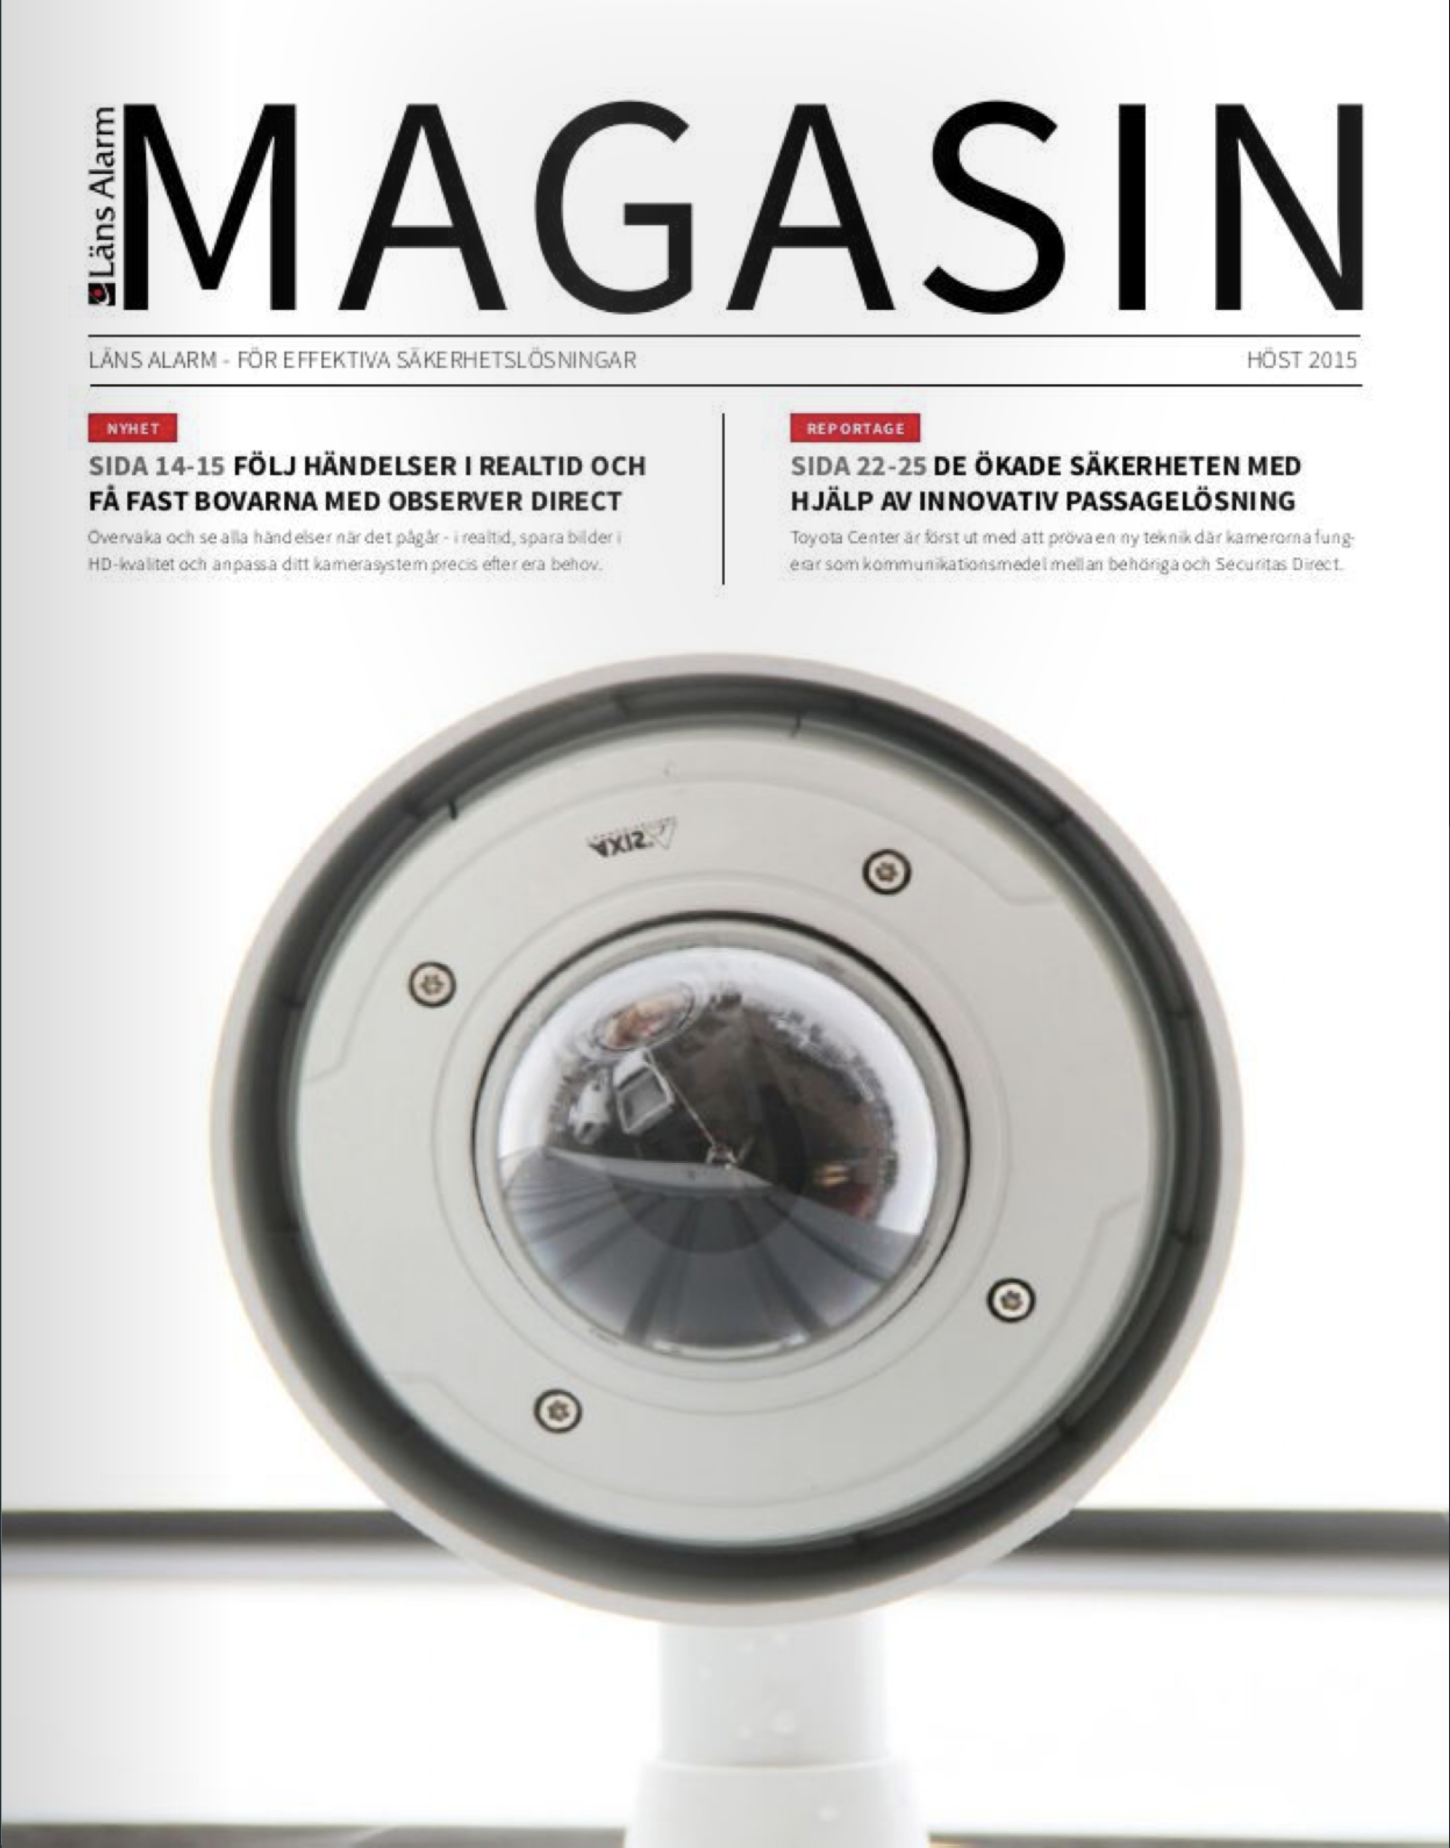 Magasin #1